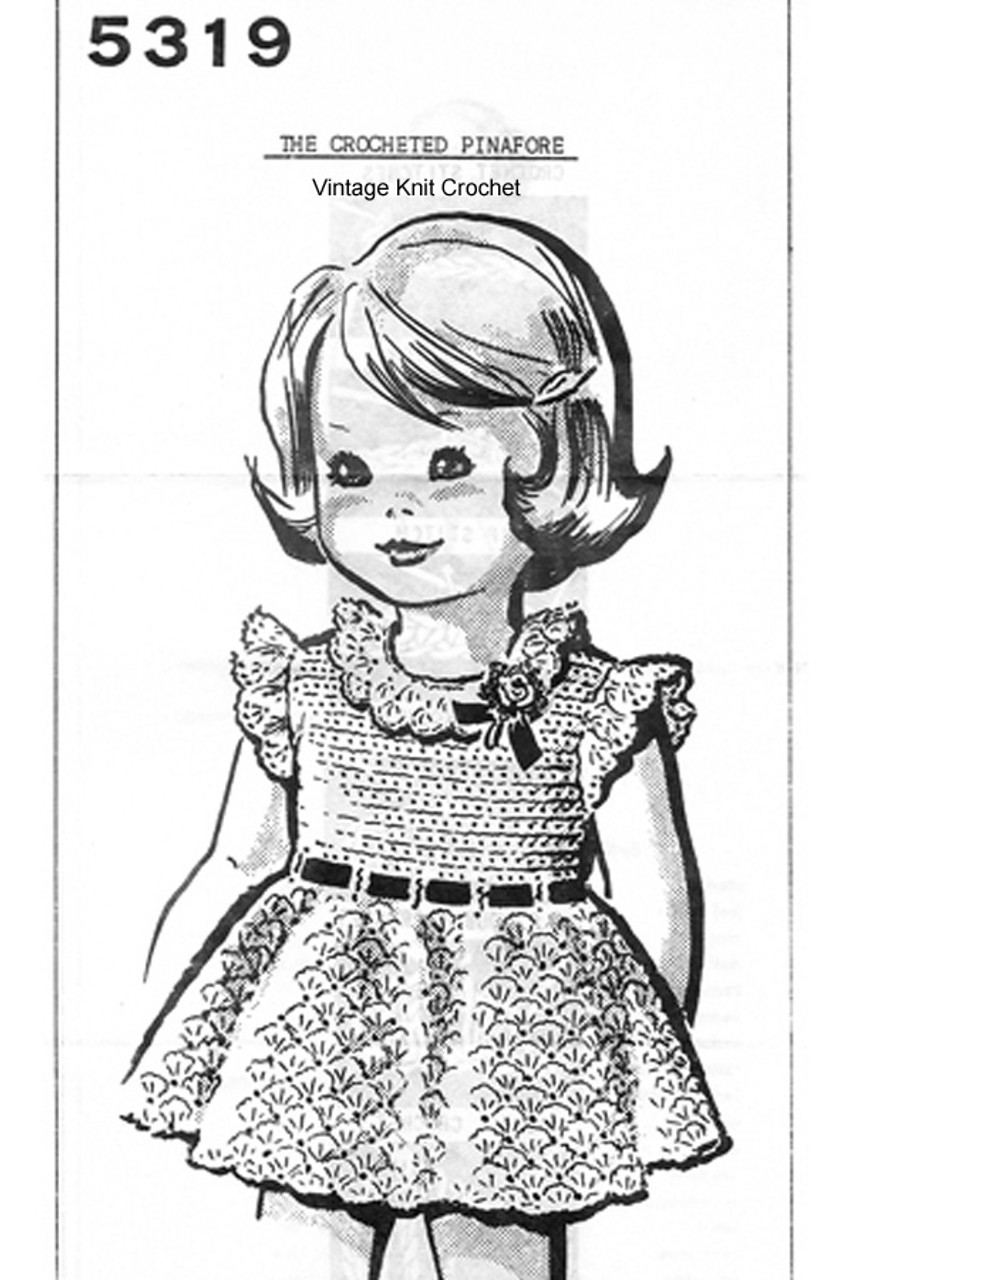 Toddler Pinafore Crocheted Dress Pattern, Mail Order 5319